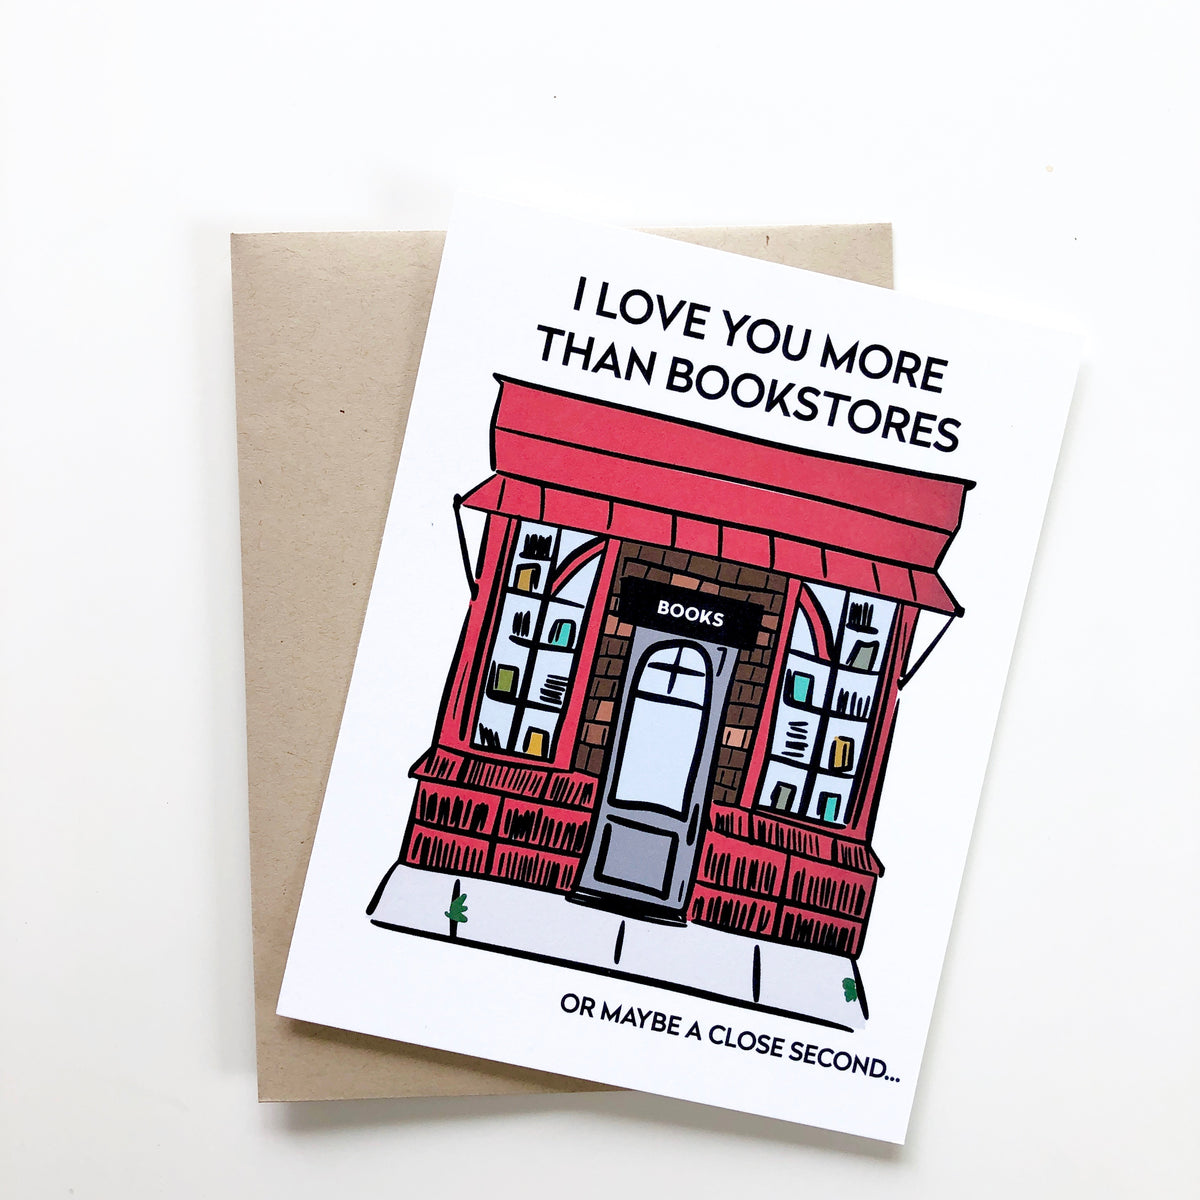 I Love You More Than Bookstores